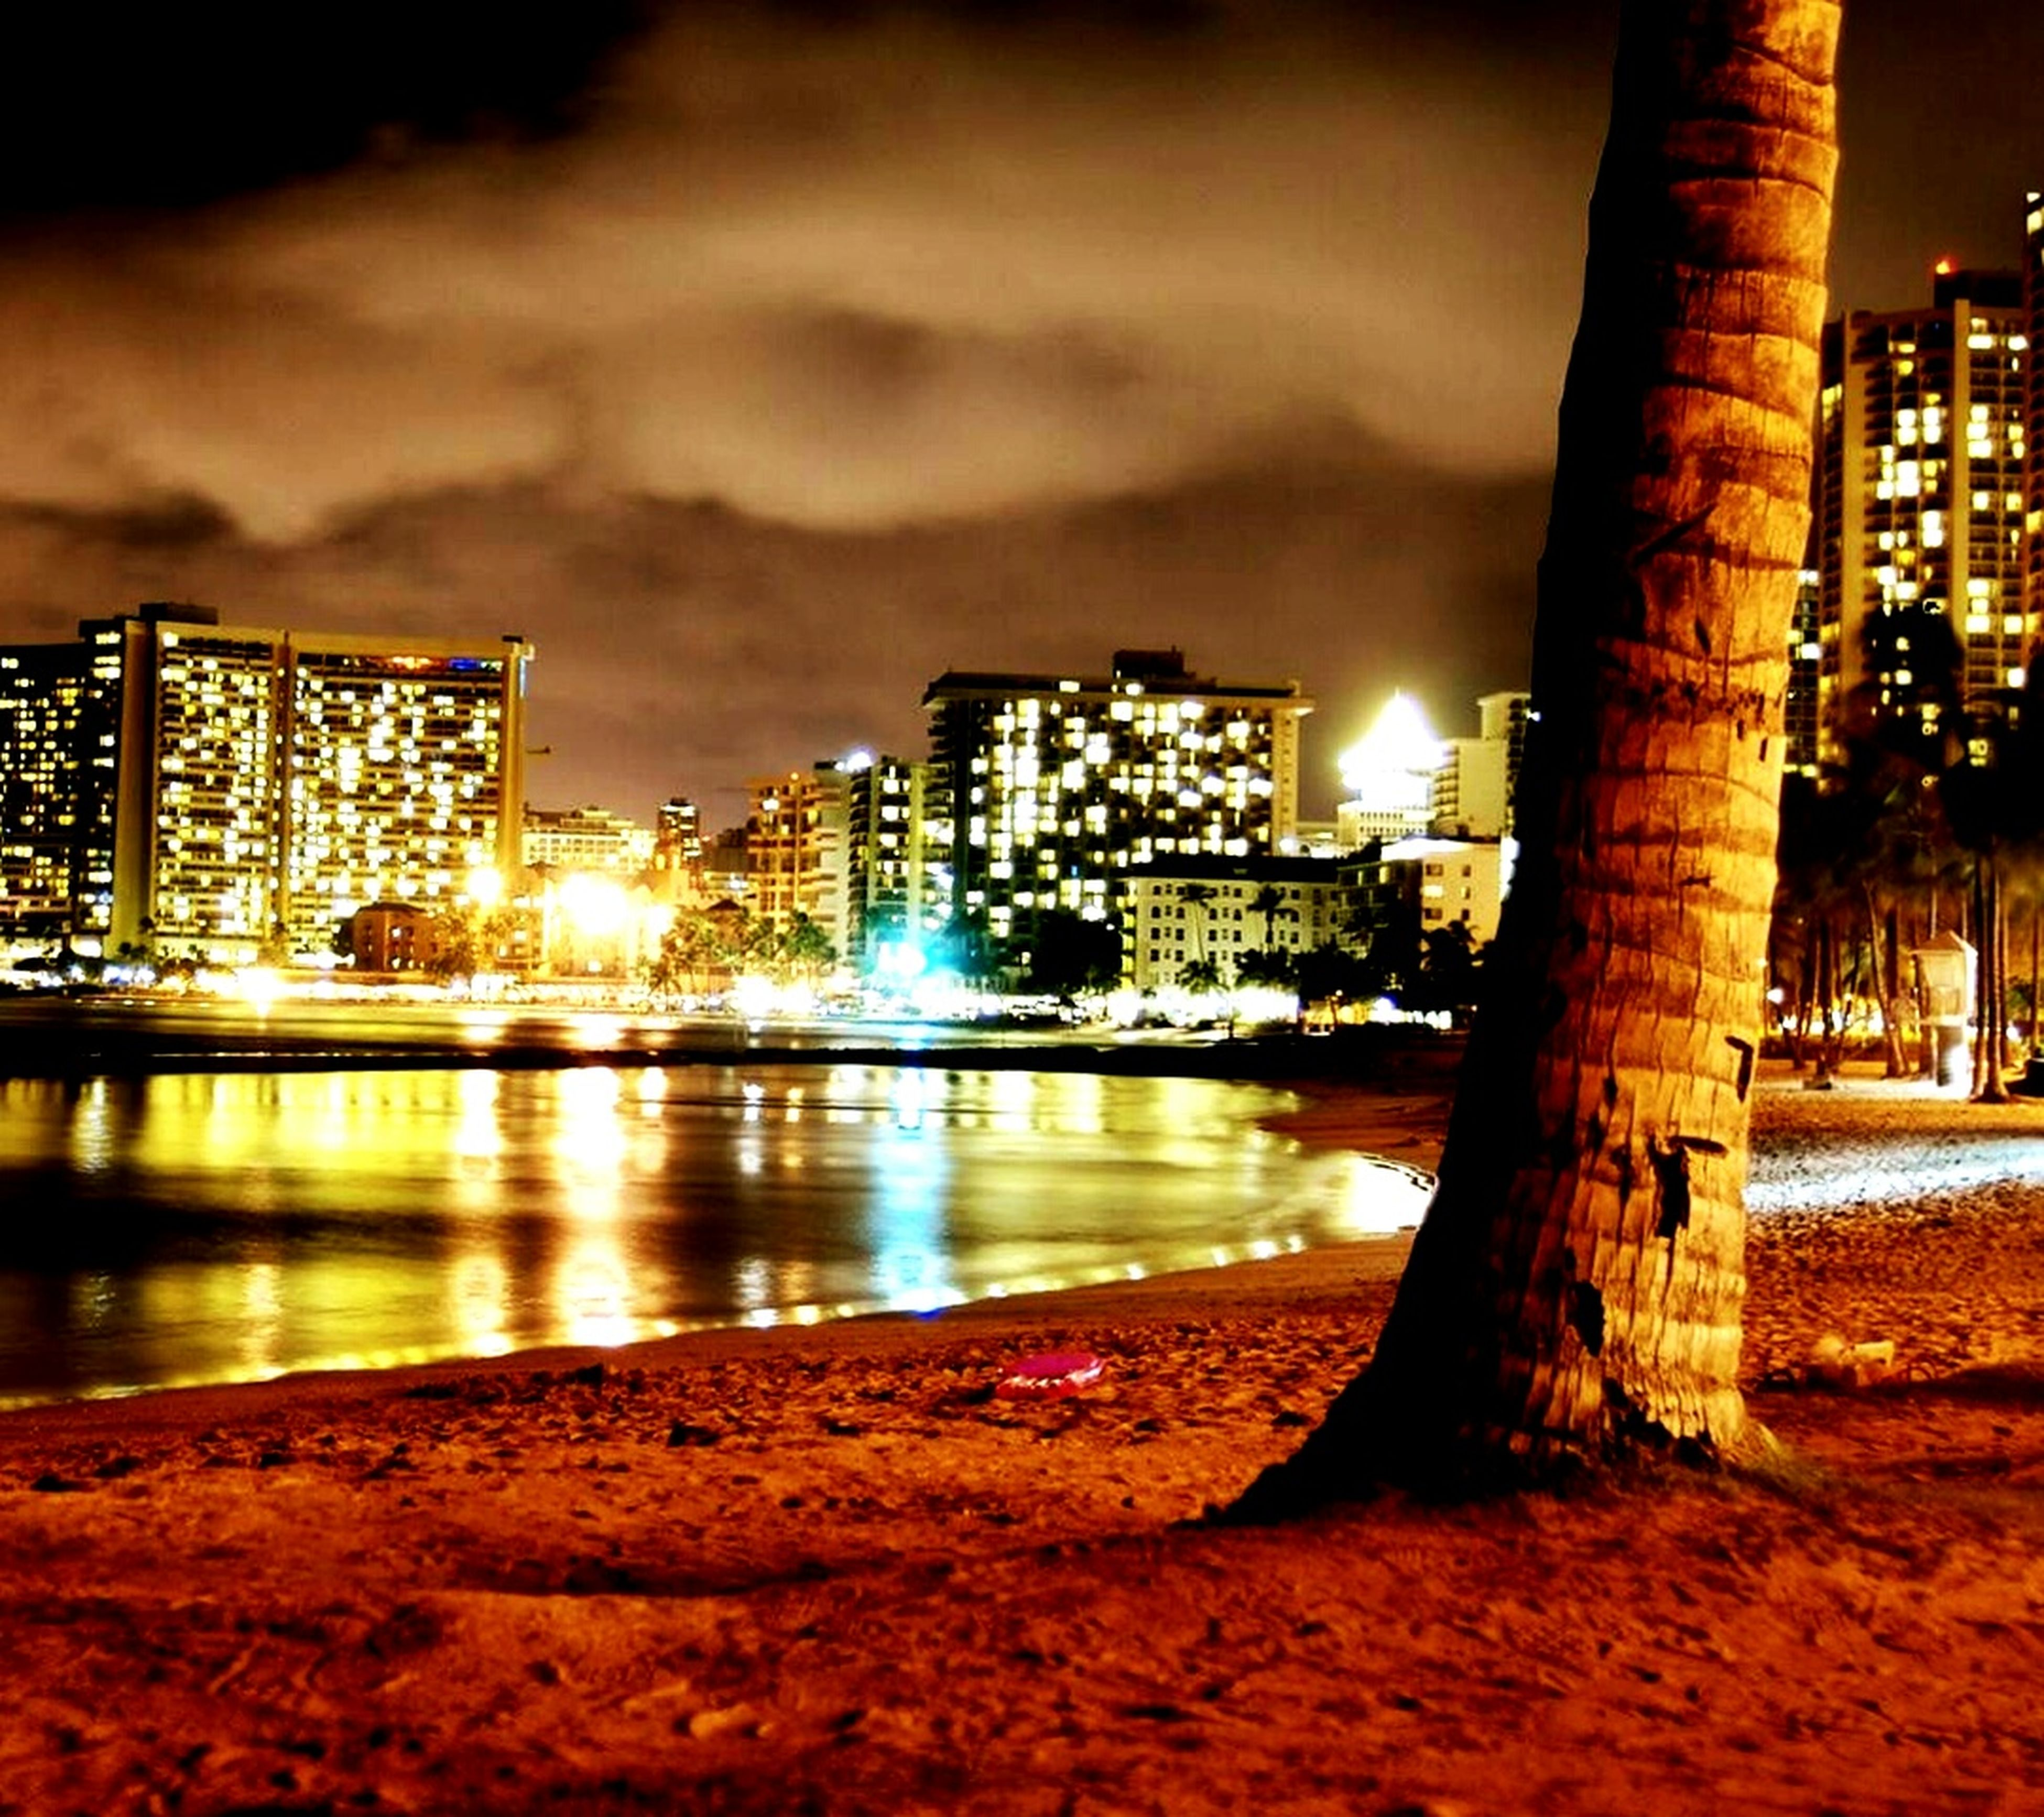 illuminated, night, building exterior, architecture, city, built structure, cityscape, sky, water, reflection, skyscraper, river, residential building, building, modern, waterfront, tall - high, office building, urban skyline, light - natural phenomenon